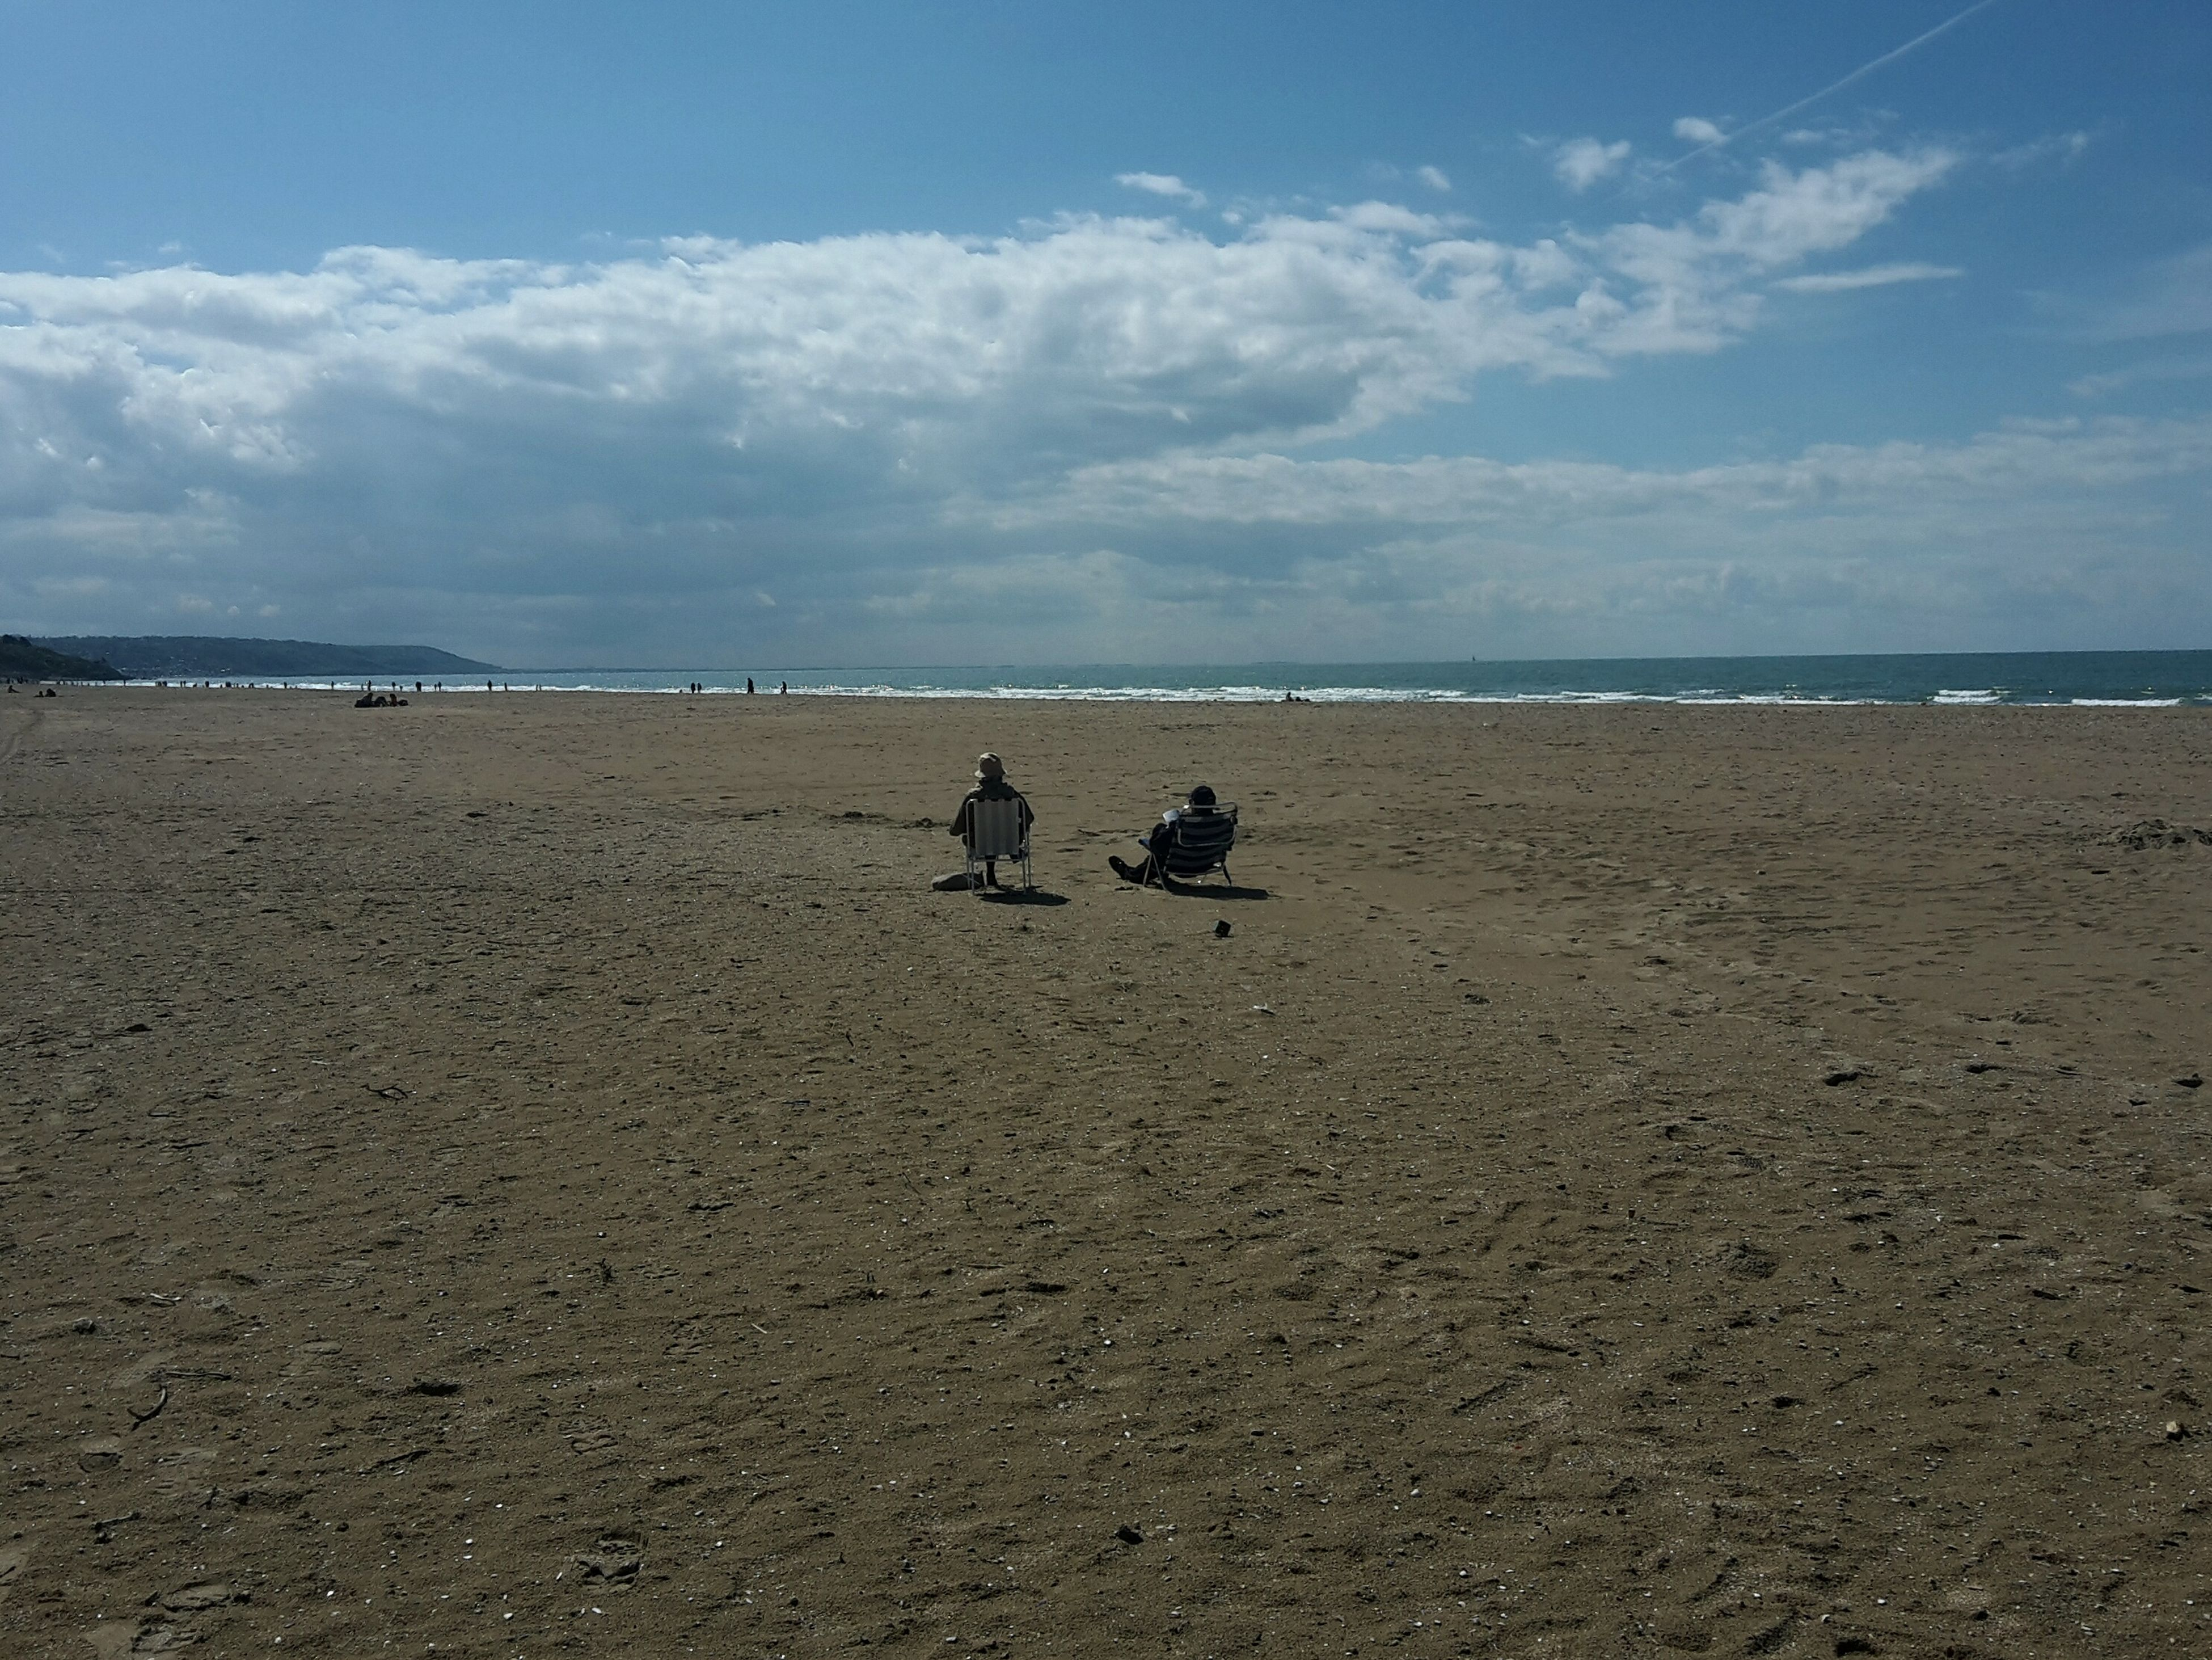 beach, sky, sea, water, cloud - sky, horizon over water, shore, tranquil scene, tranquility, scenics, nature, cloud, beauty in nature, mammal, day, cloudy, outdoors, lifestyles, vacations, unrecognizable person, idyllic, coastline, remote, blue, non-urban scene